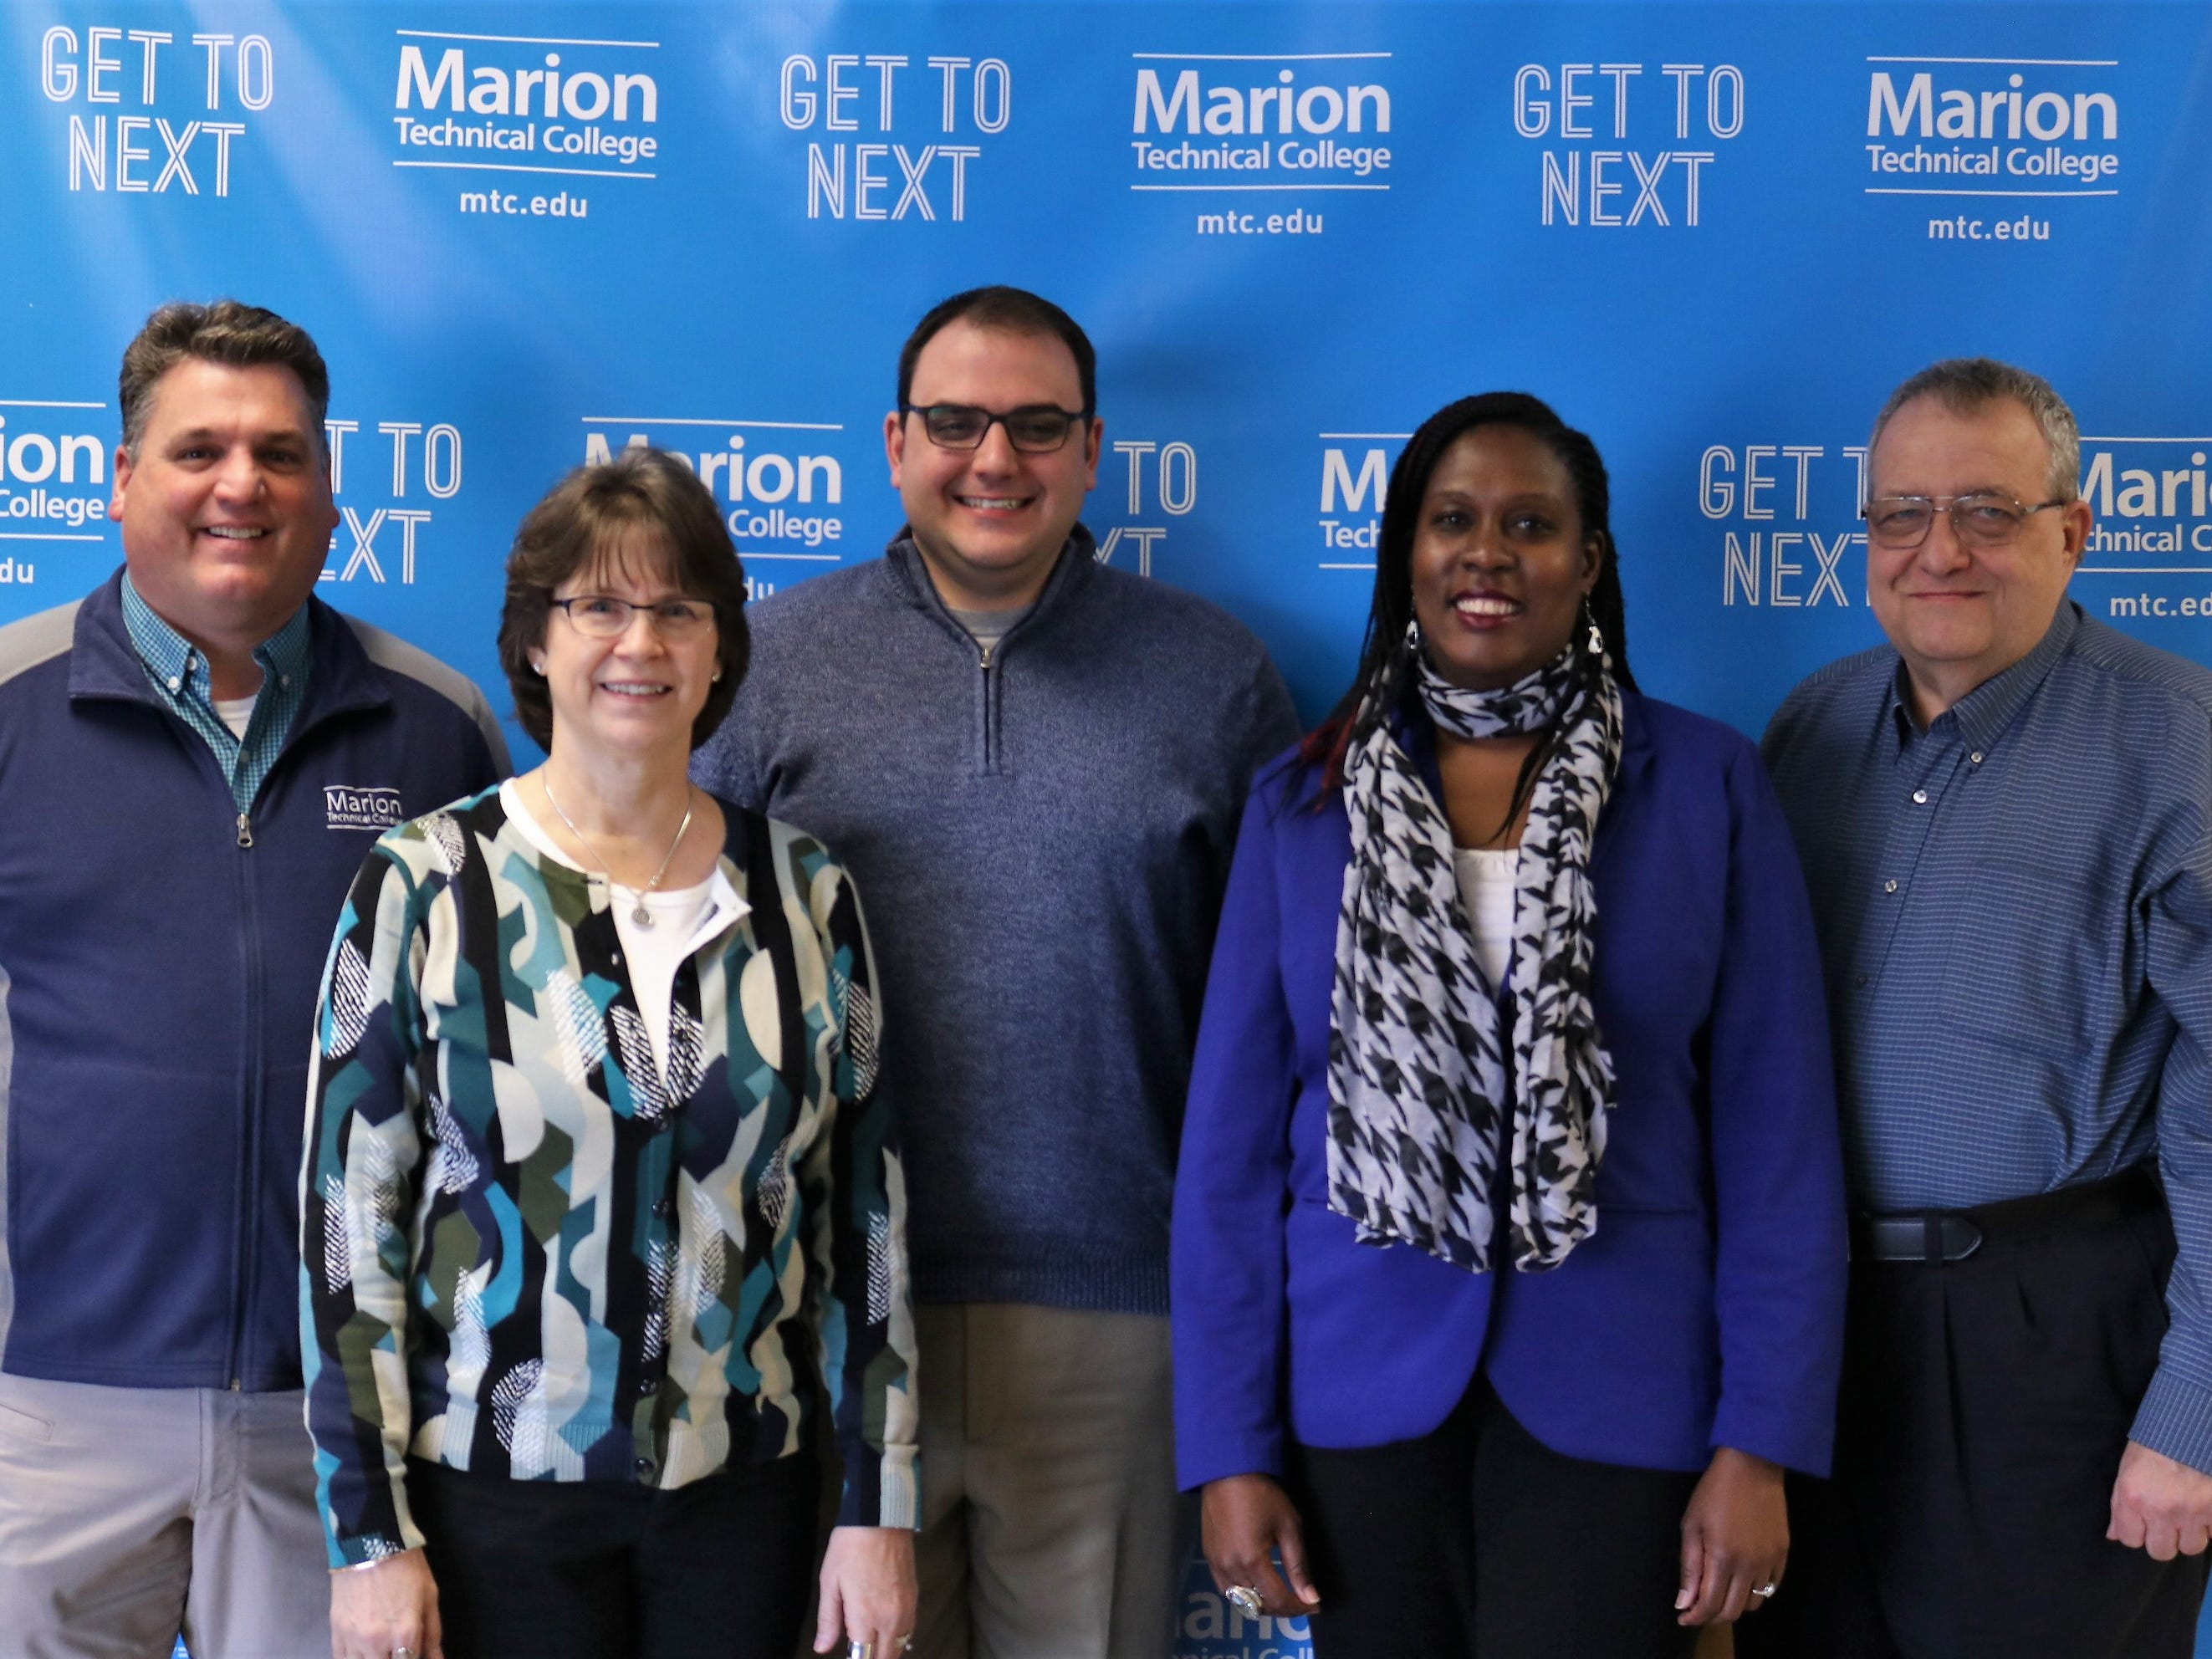 Ohio Magazine honors Marion Technical College professors